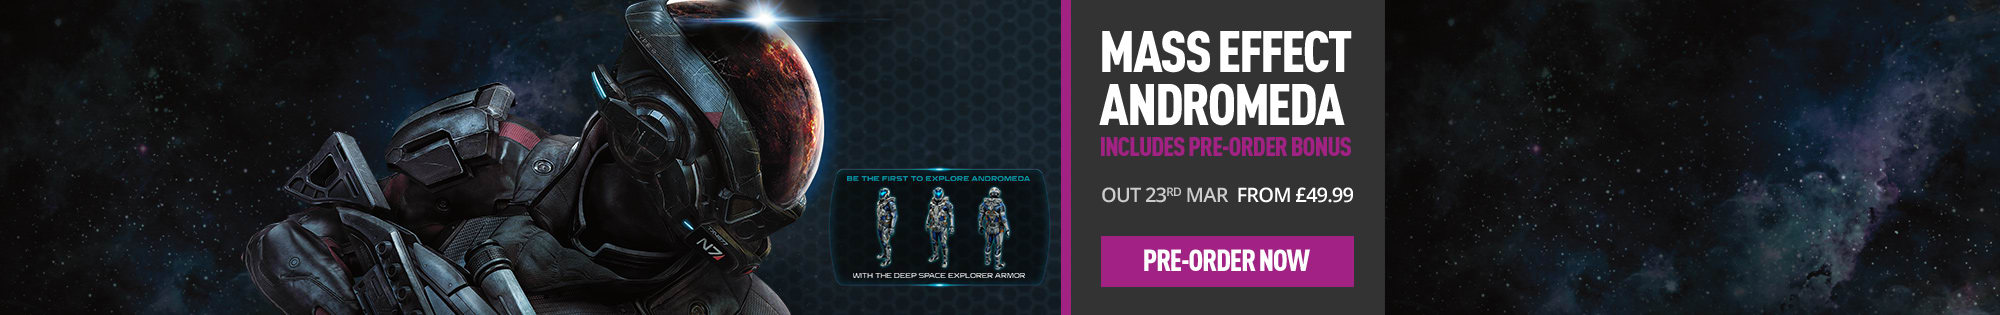 Mass Effect Andromeda for Xbox One, PS4 and PC - Pre-order Now at GAME.co.uk!